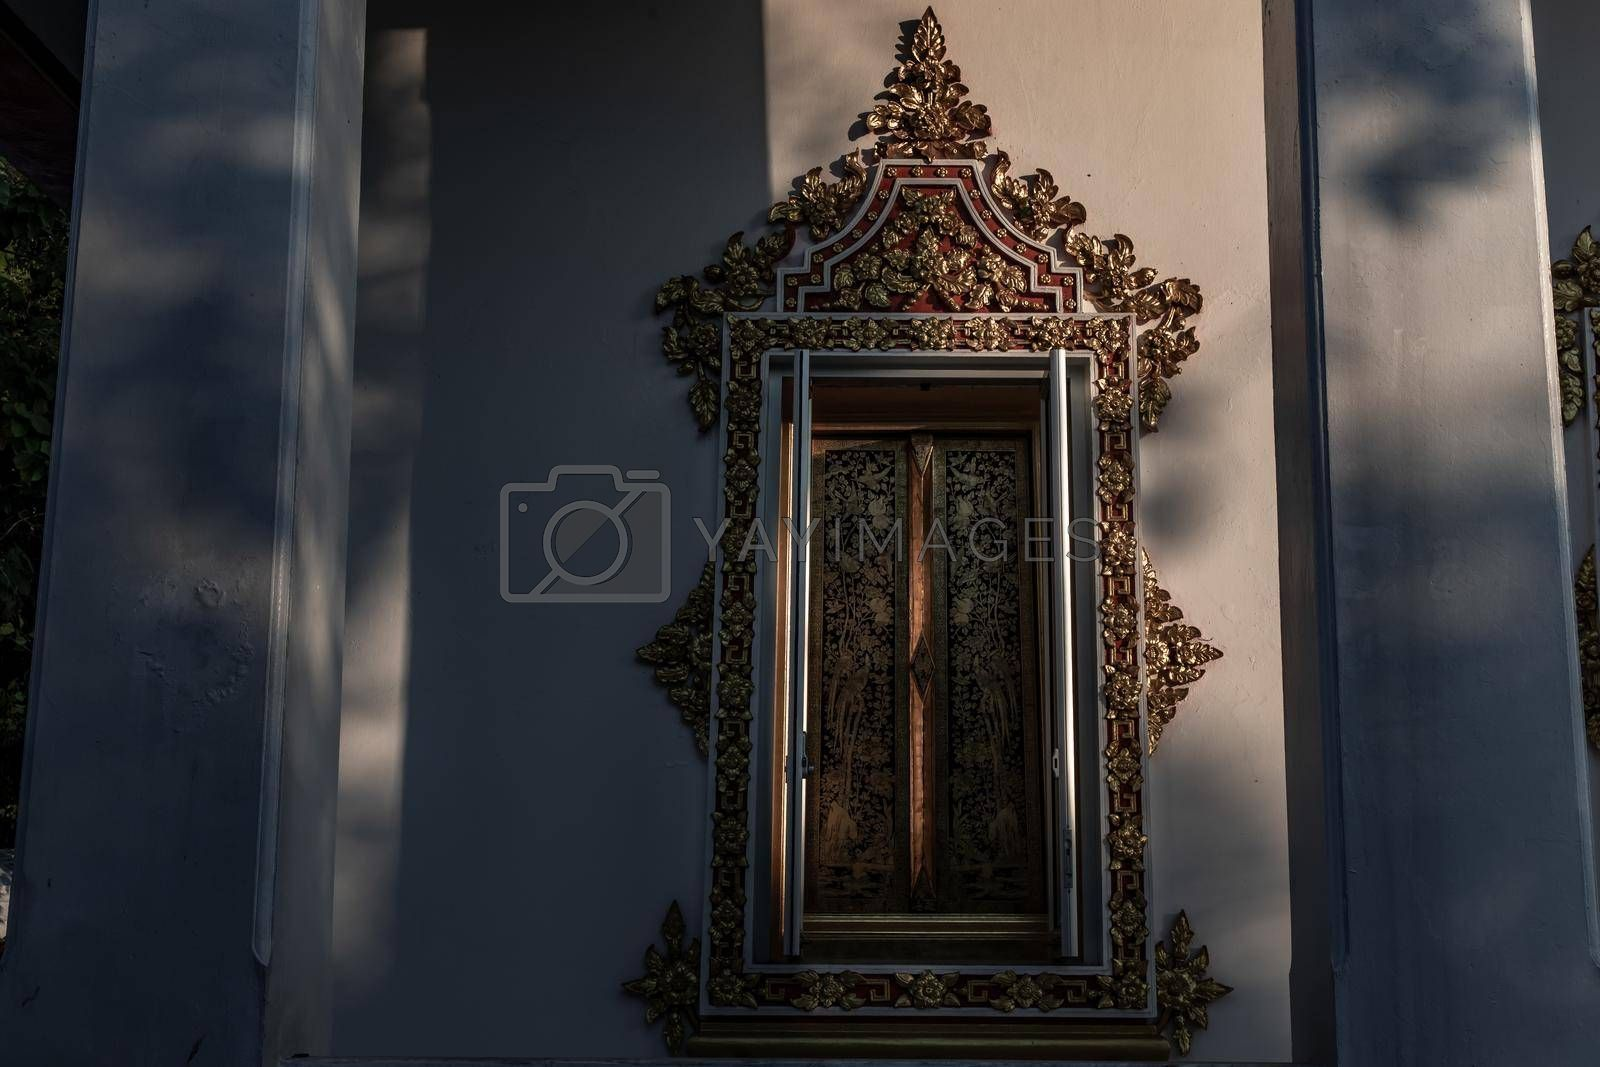 Bangkok, Thailand - Dec 9, 2019 : The light shines, creating light and shadow in the temple's architecture, Shadows and deep shade. Warm colours and contrasted light.